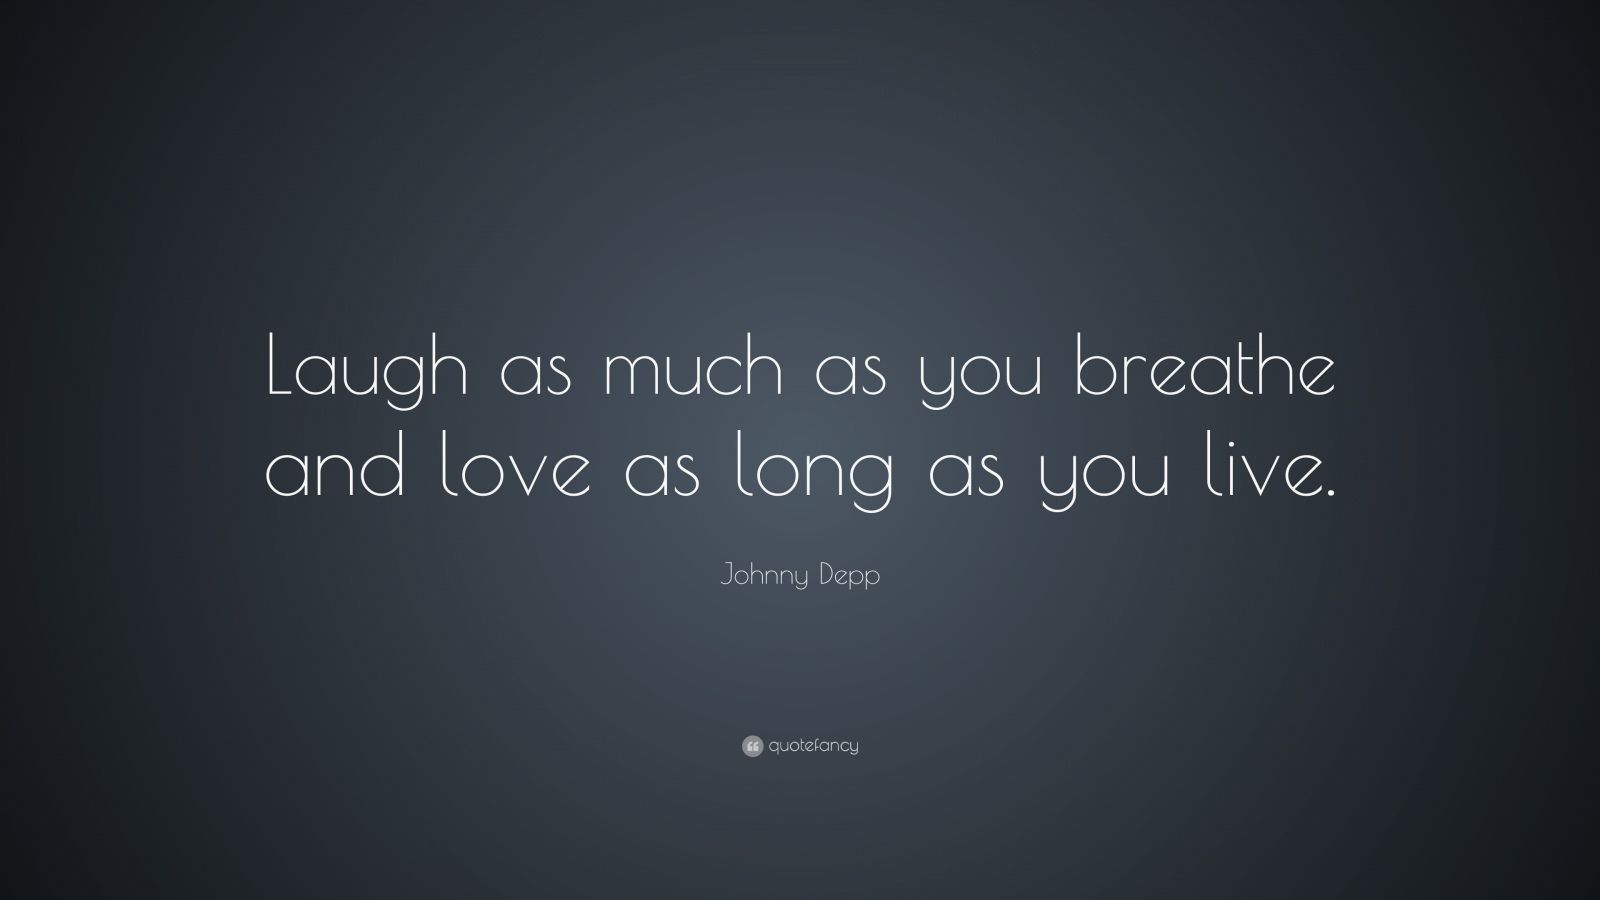 """Johnny Depp Quote: """"Laugh as much as you breathe and love as long as you live."""""""